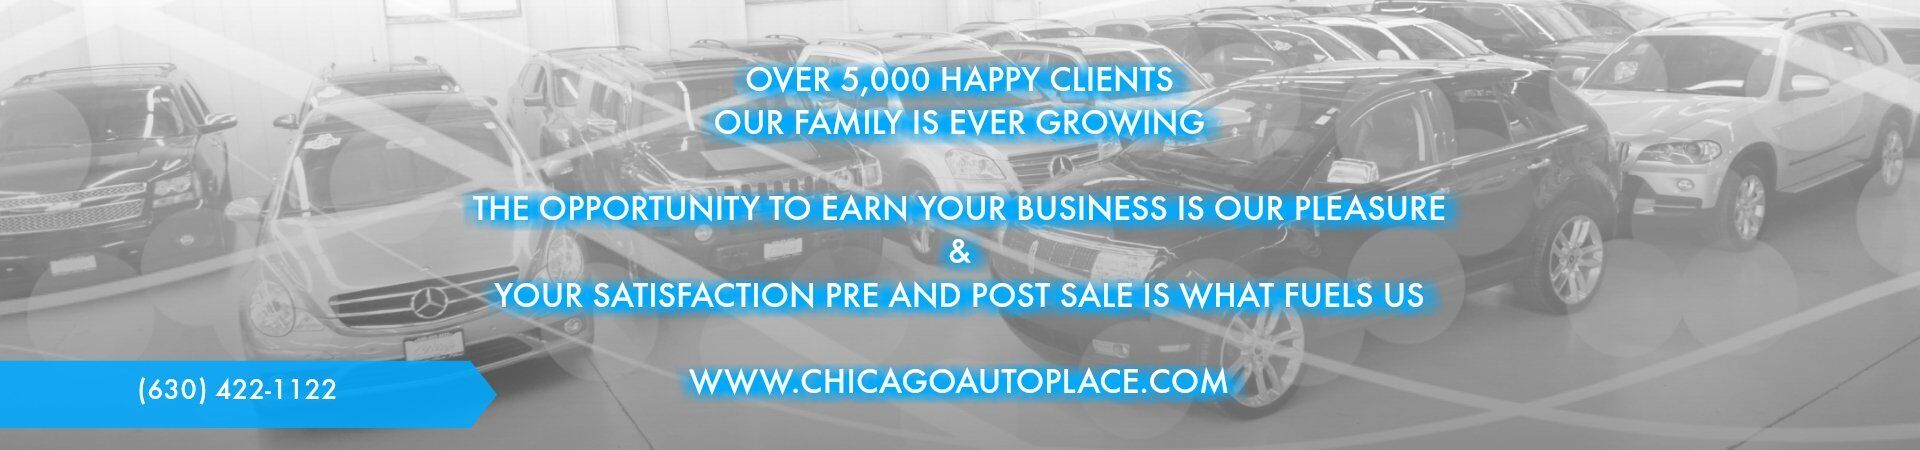 Over 5000 Happy Clients